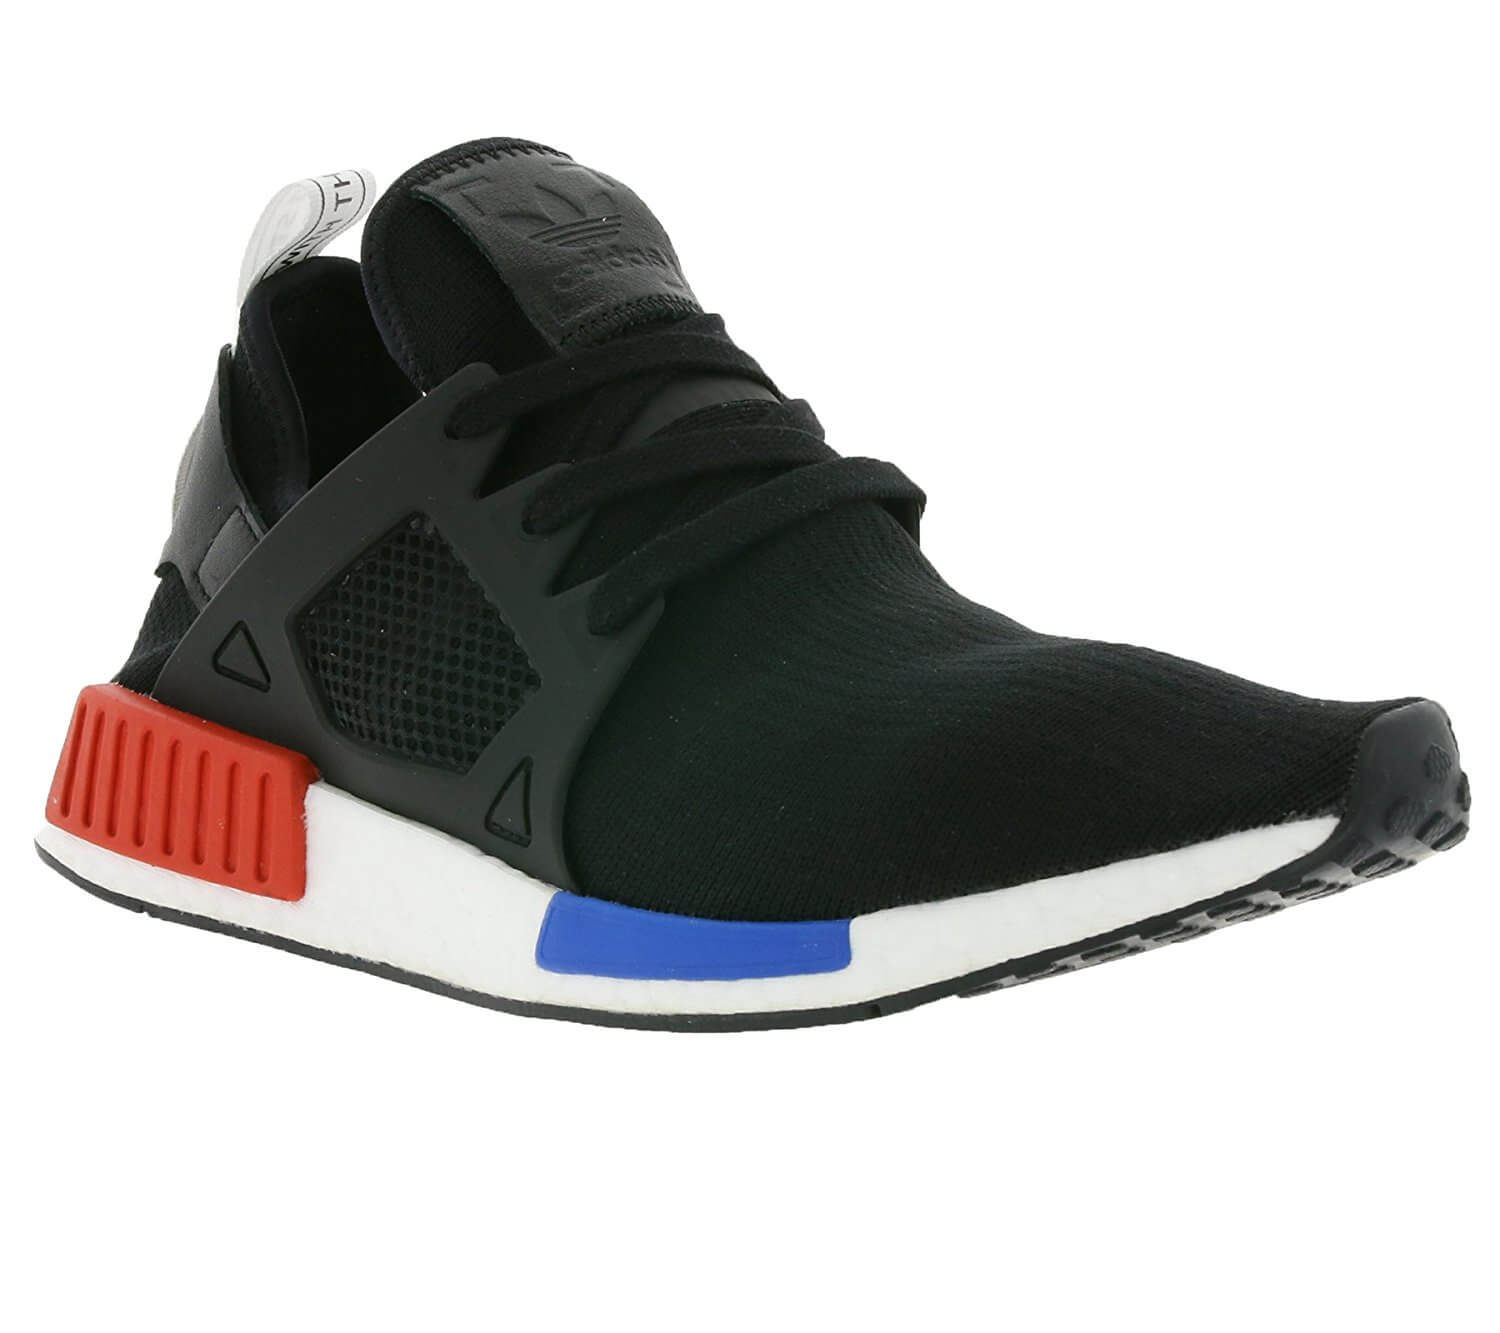 best service 5642c f7a1c Adidas NMD XR1 Reviewed for Performance and Quality